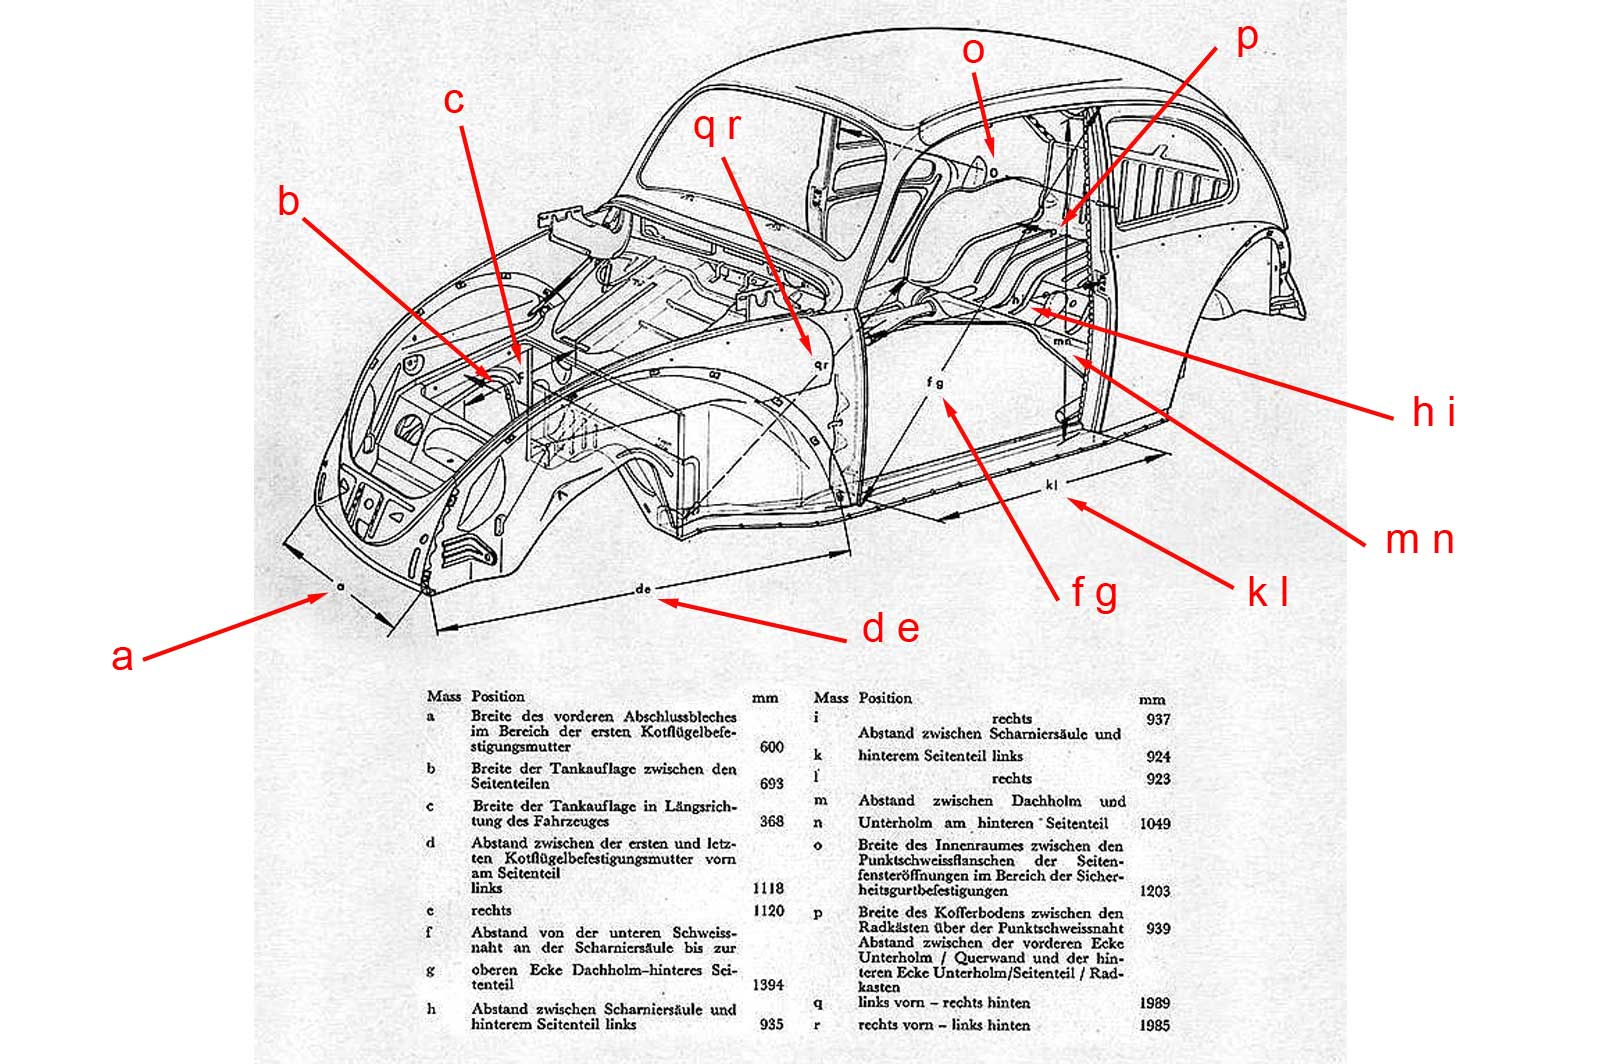 1965 Vw Bug Wiring Diagram. 1965. Wiring Example And Images